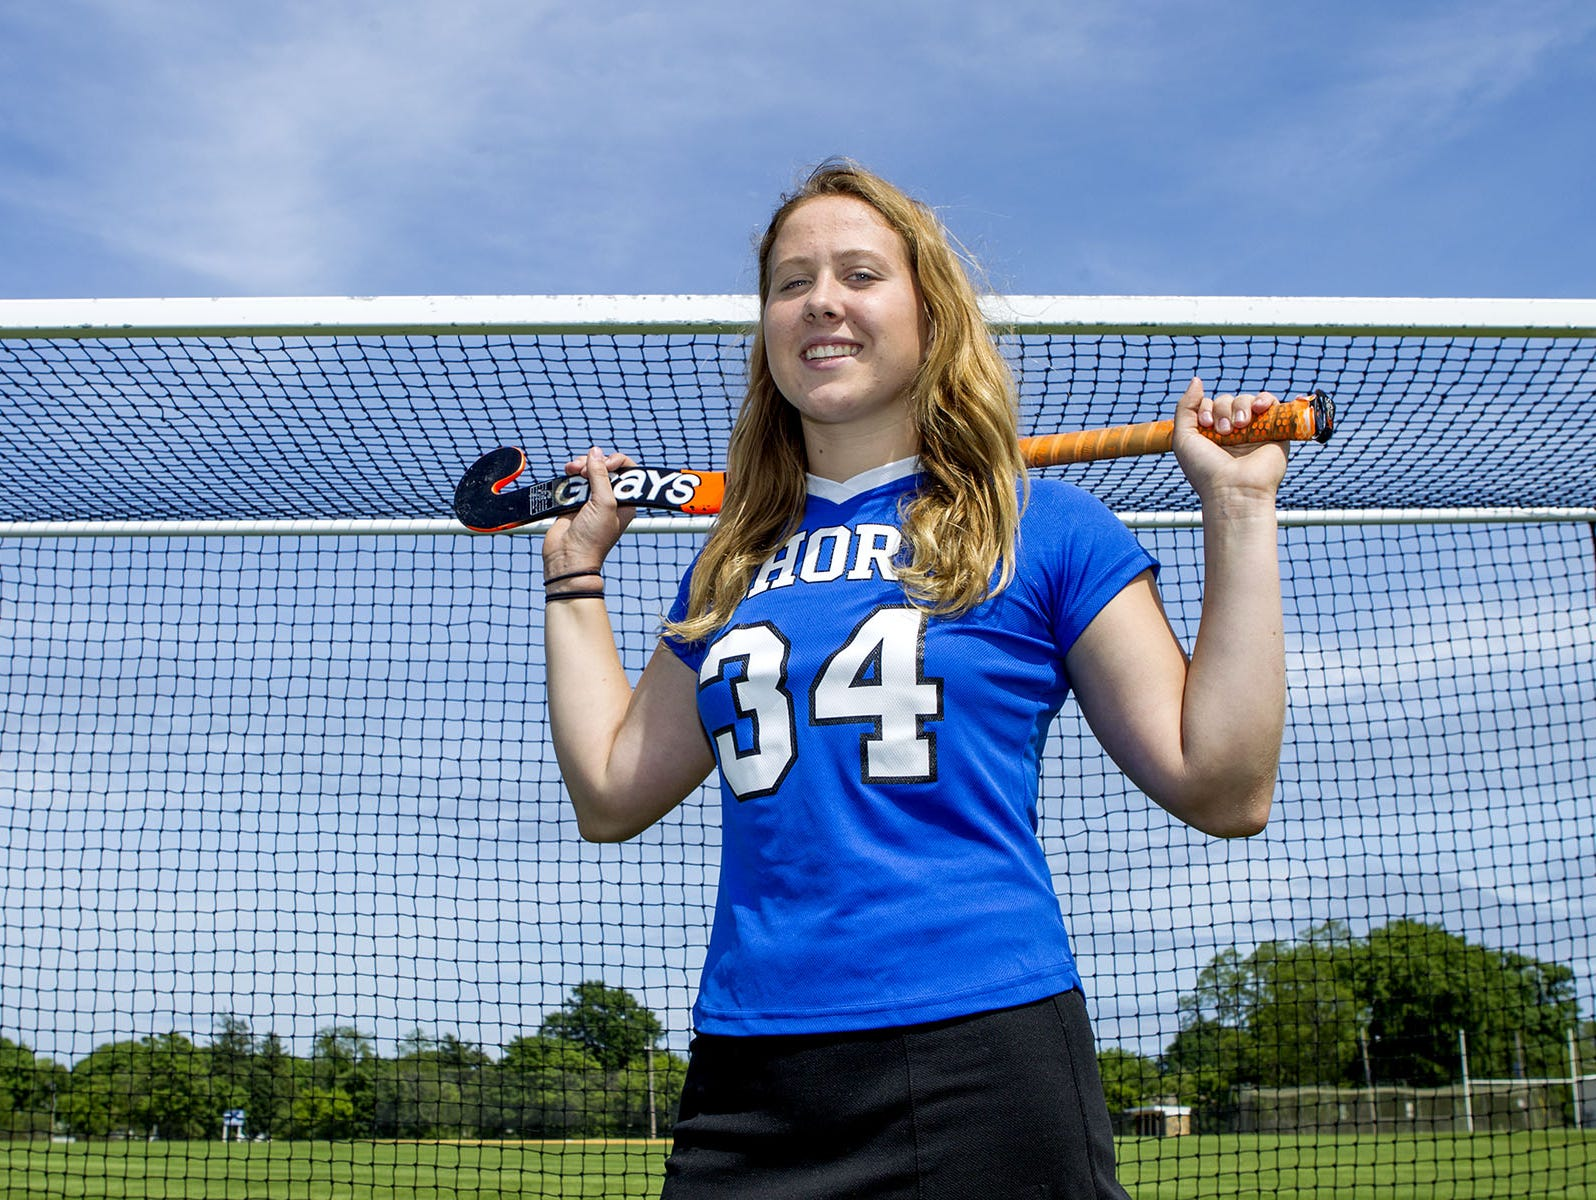 MIKE MCLAUGHLIN/CORRESPONDENT Shore Regional goalkeeper Sarah Dwyer has committed to play field hockey at Boston College. Shore Regional Junior field hockey starting goalie Sarah Dwyer, going into her senior year in the fall, has committed to an athletic scholarship from Boston College. Wednesday, June 3, 2015, West Long Branch, NJ. Mike McLaughlin/Asbury Park Press ASB 0612 Sarah Dwyer